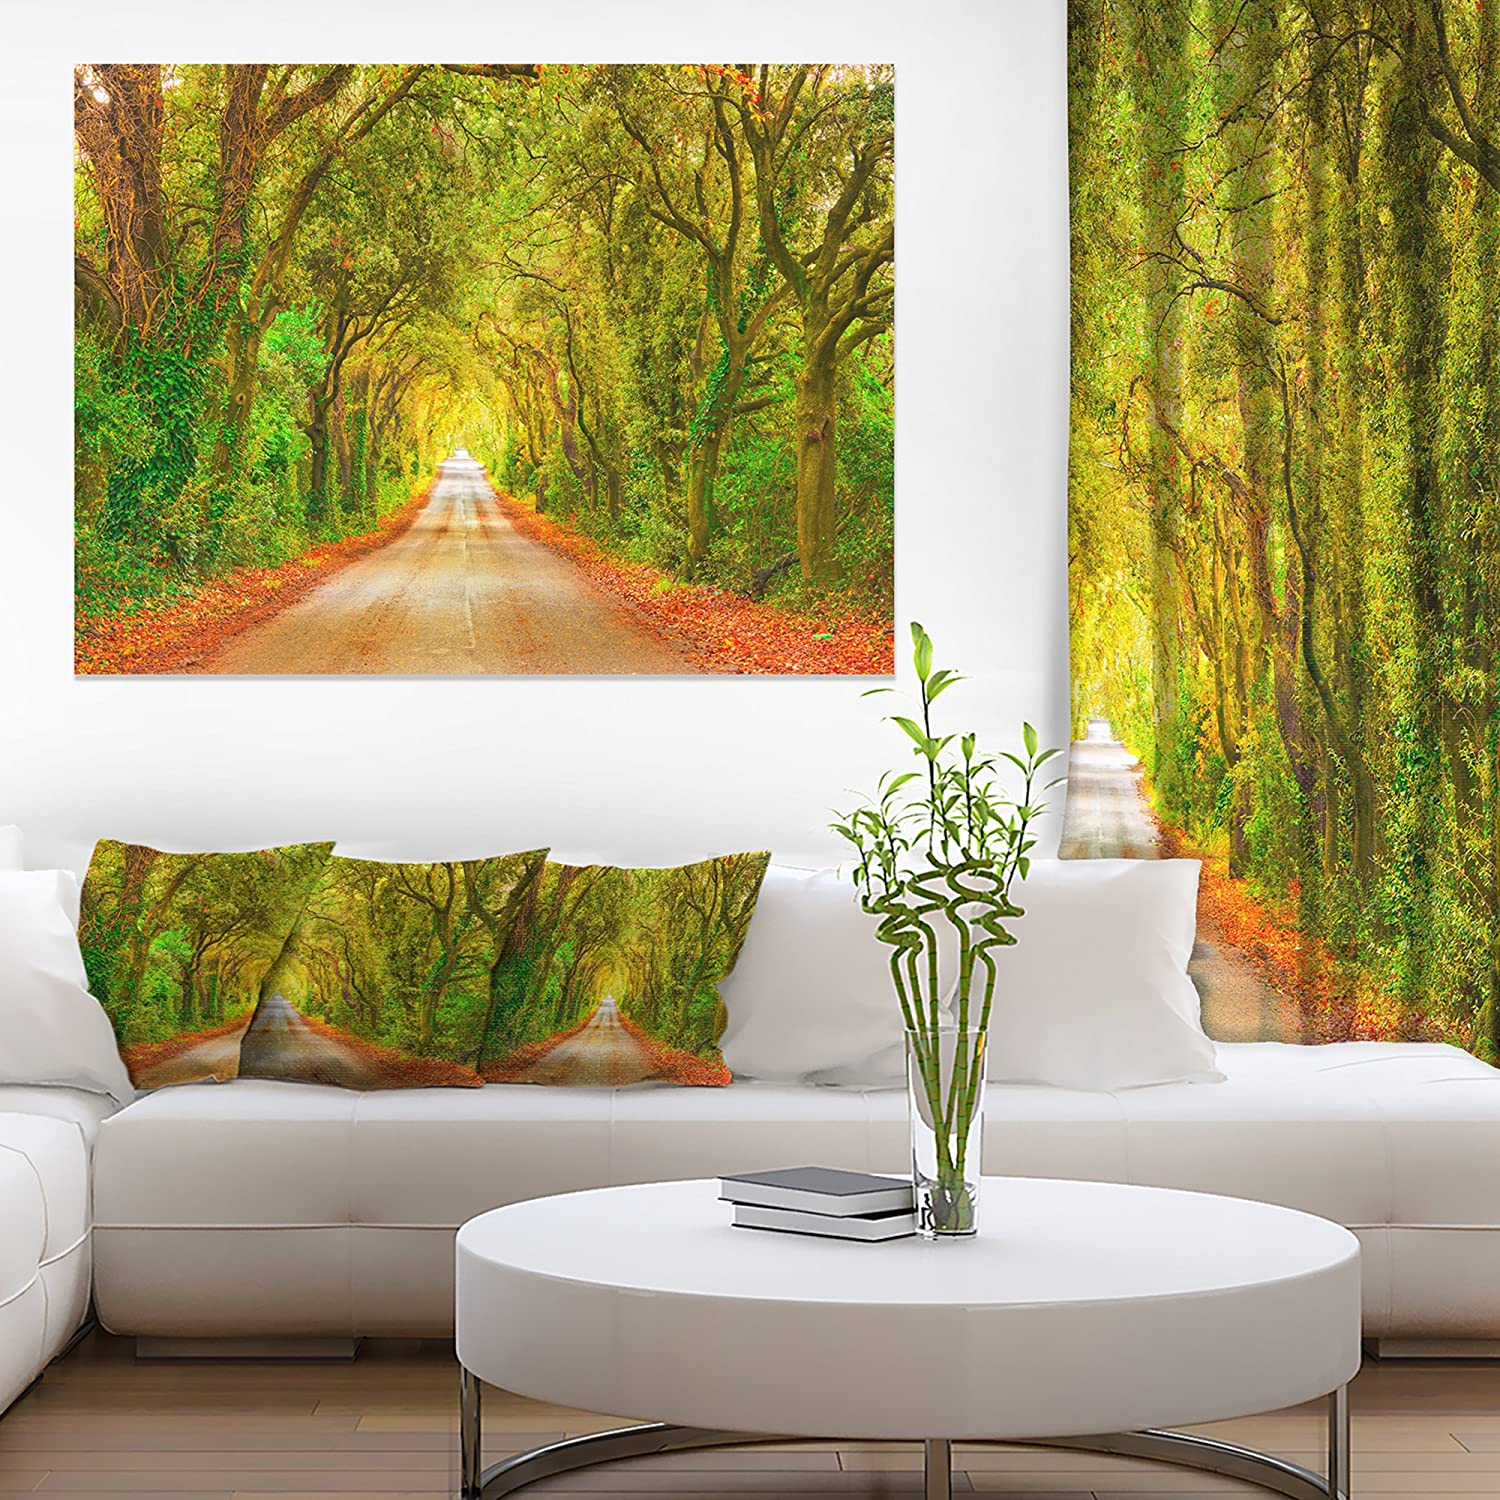 Amazon.com: Fall Greenery and Road Straight Ahead Oversized Forest ...